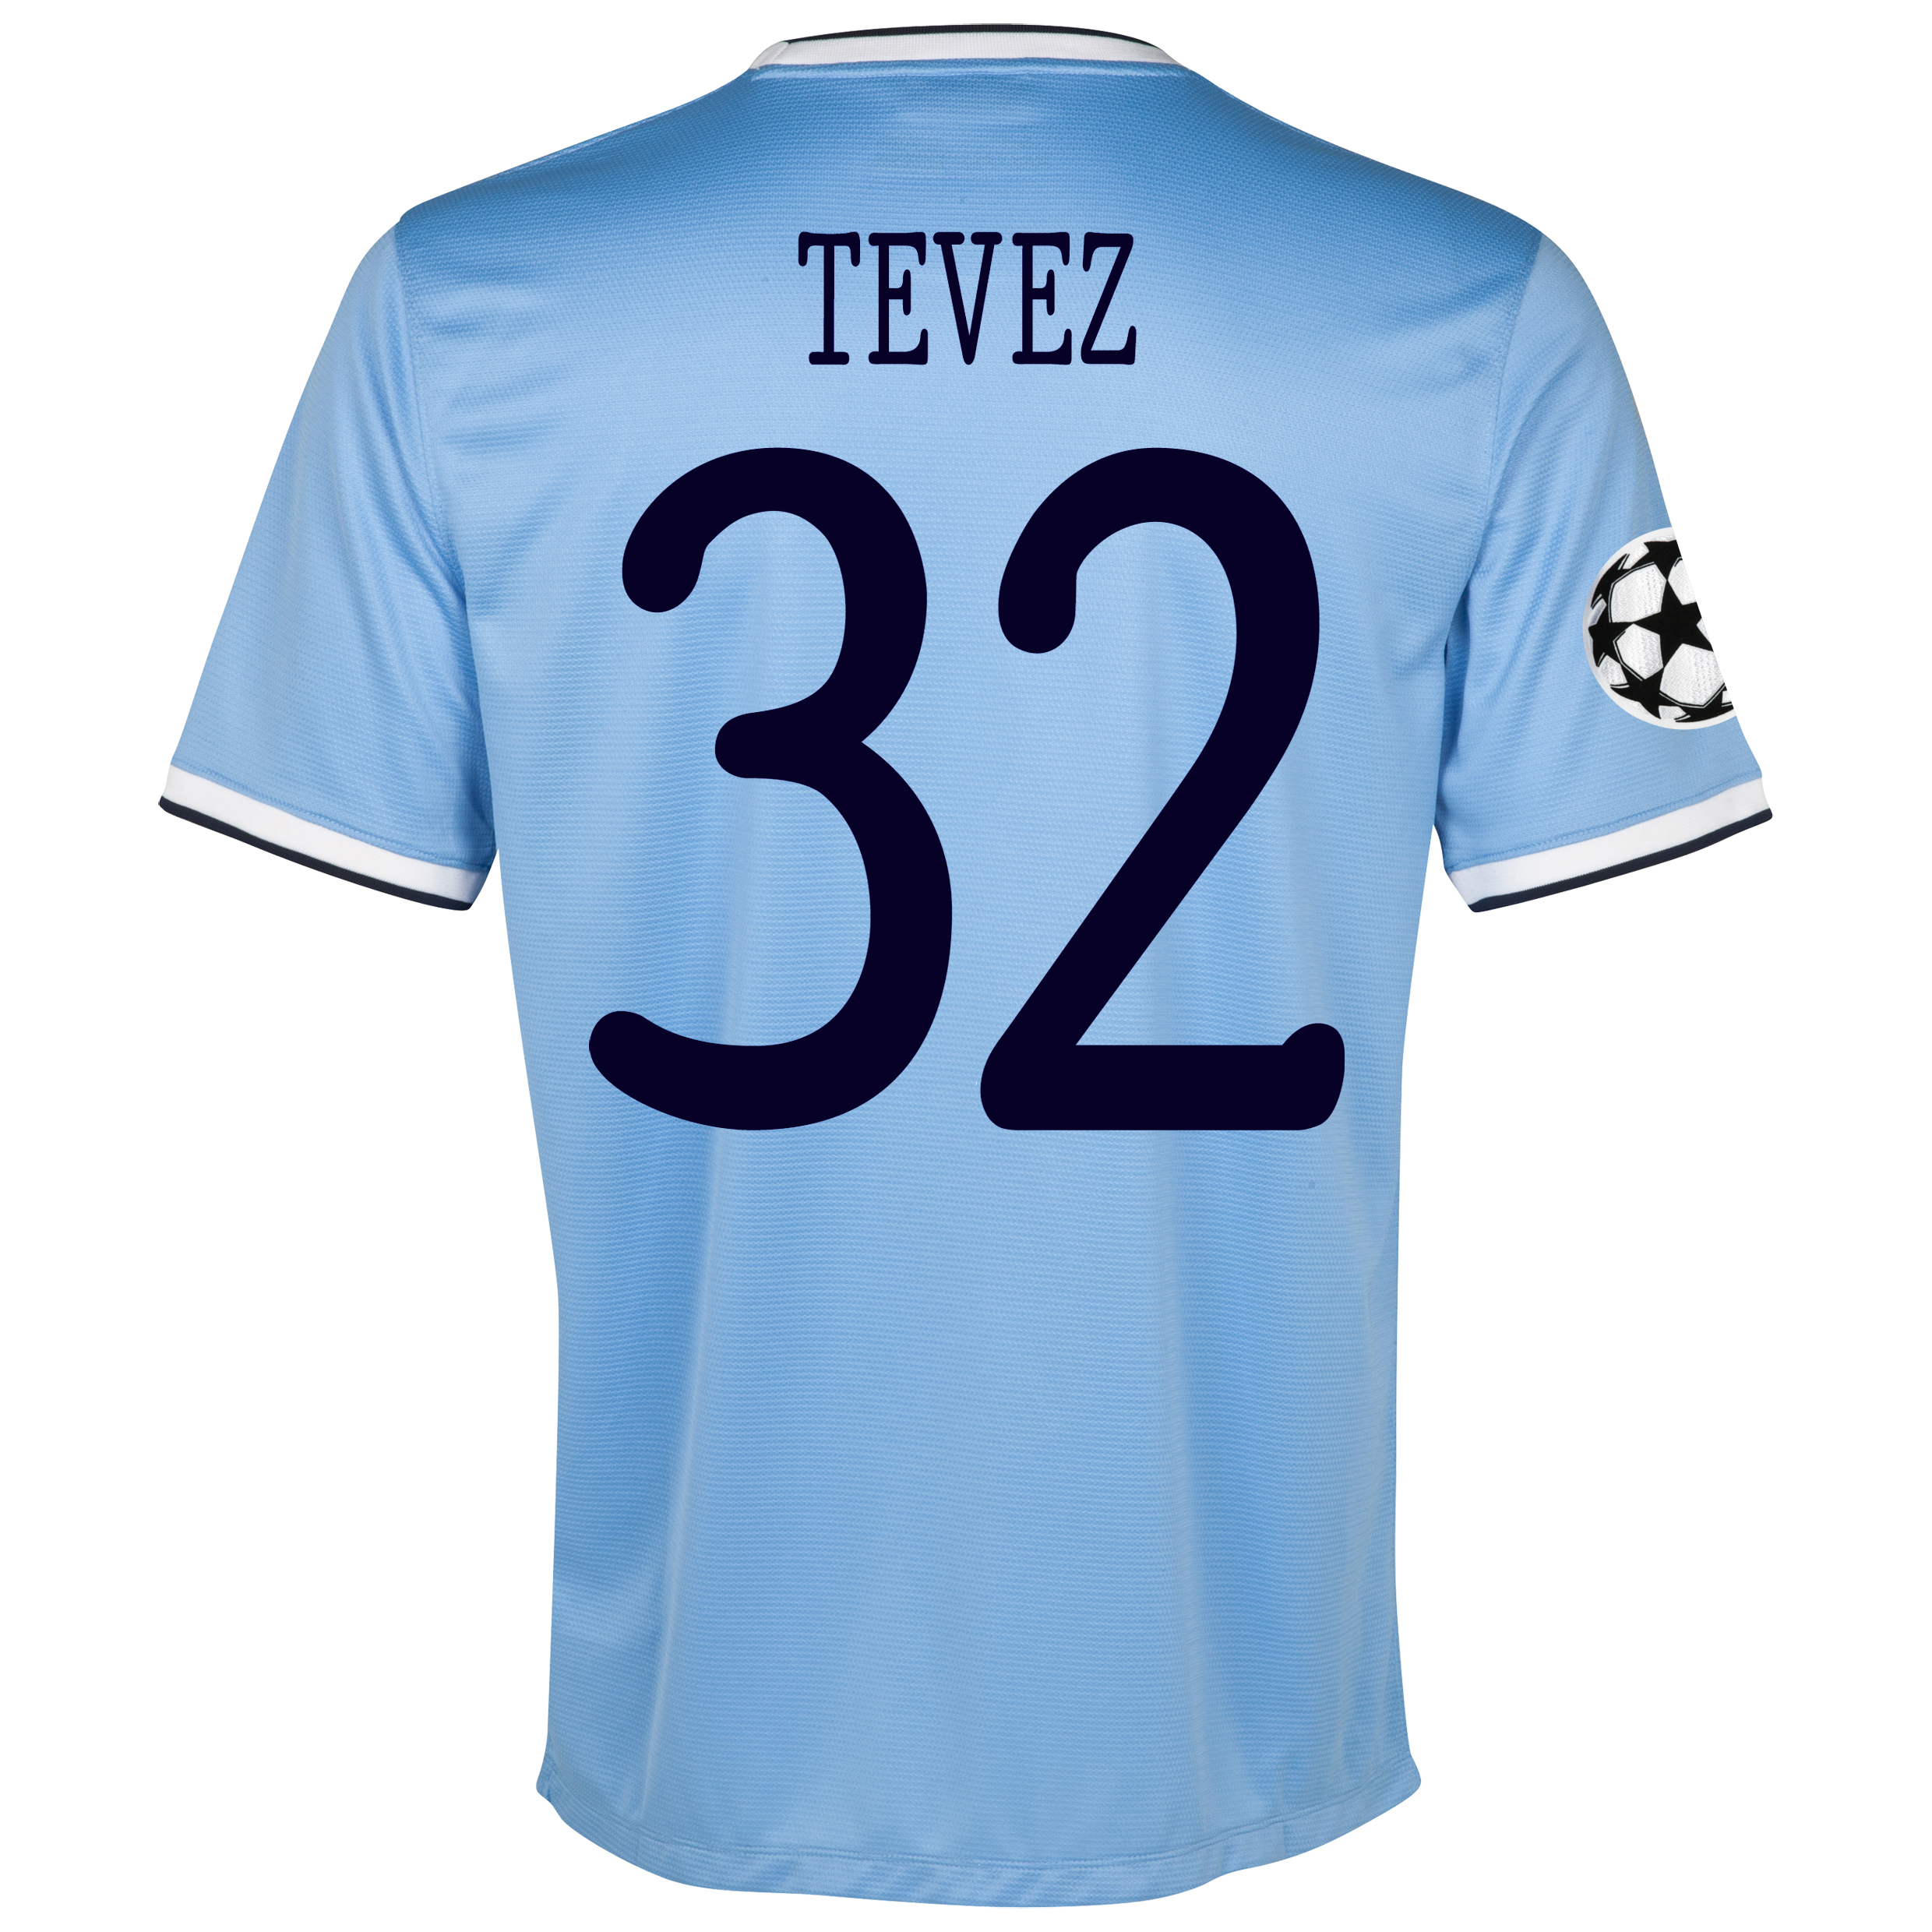 Manchester City UEFA Champions League Home Shirt 2013/14 with Tevez 32 printing